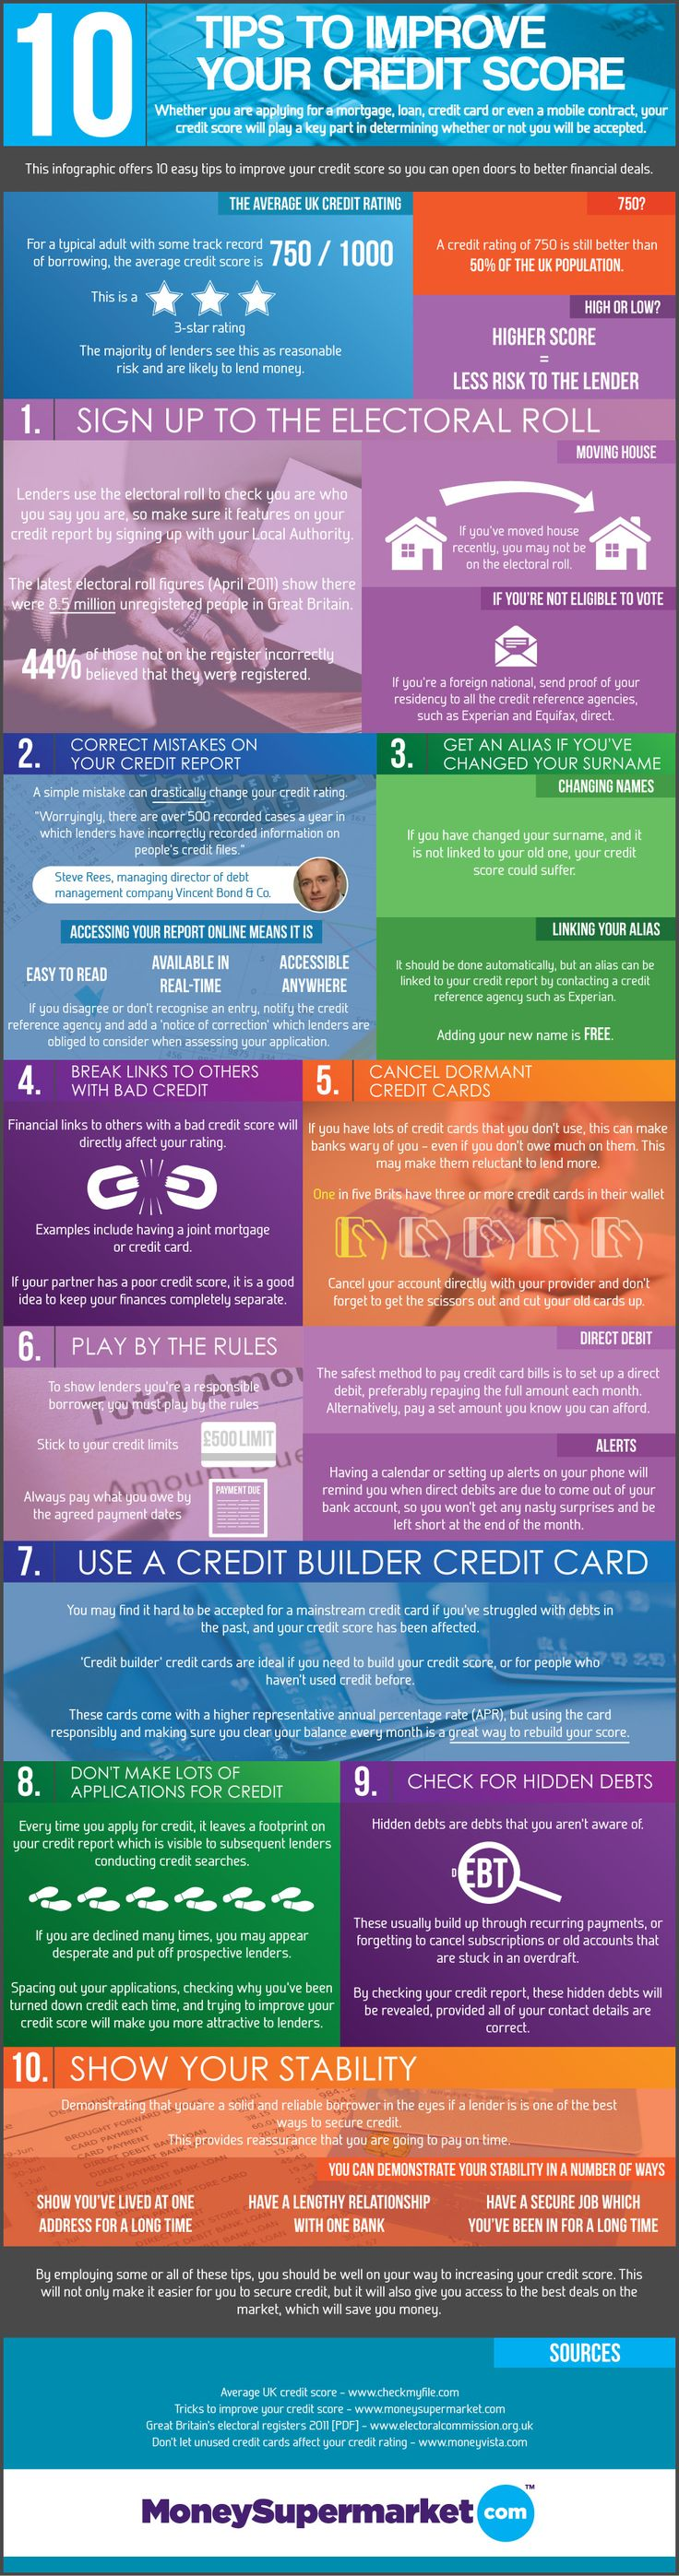 10 Tips to Improve your Credit Score